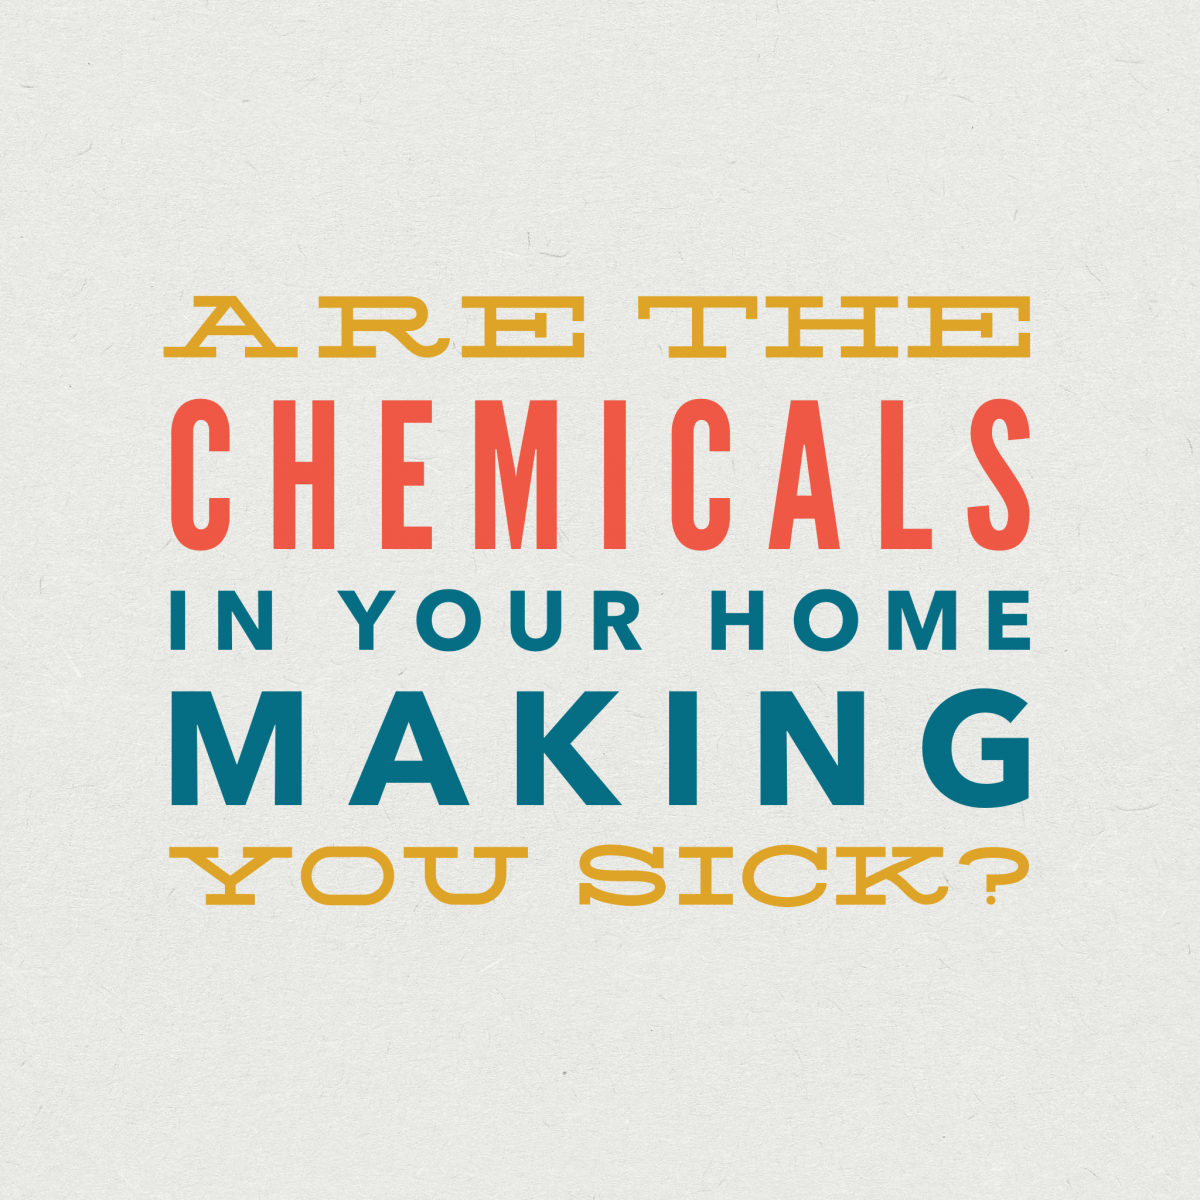 Musings about Chemicals in Our Home Furnishings